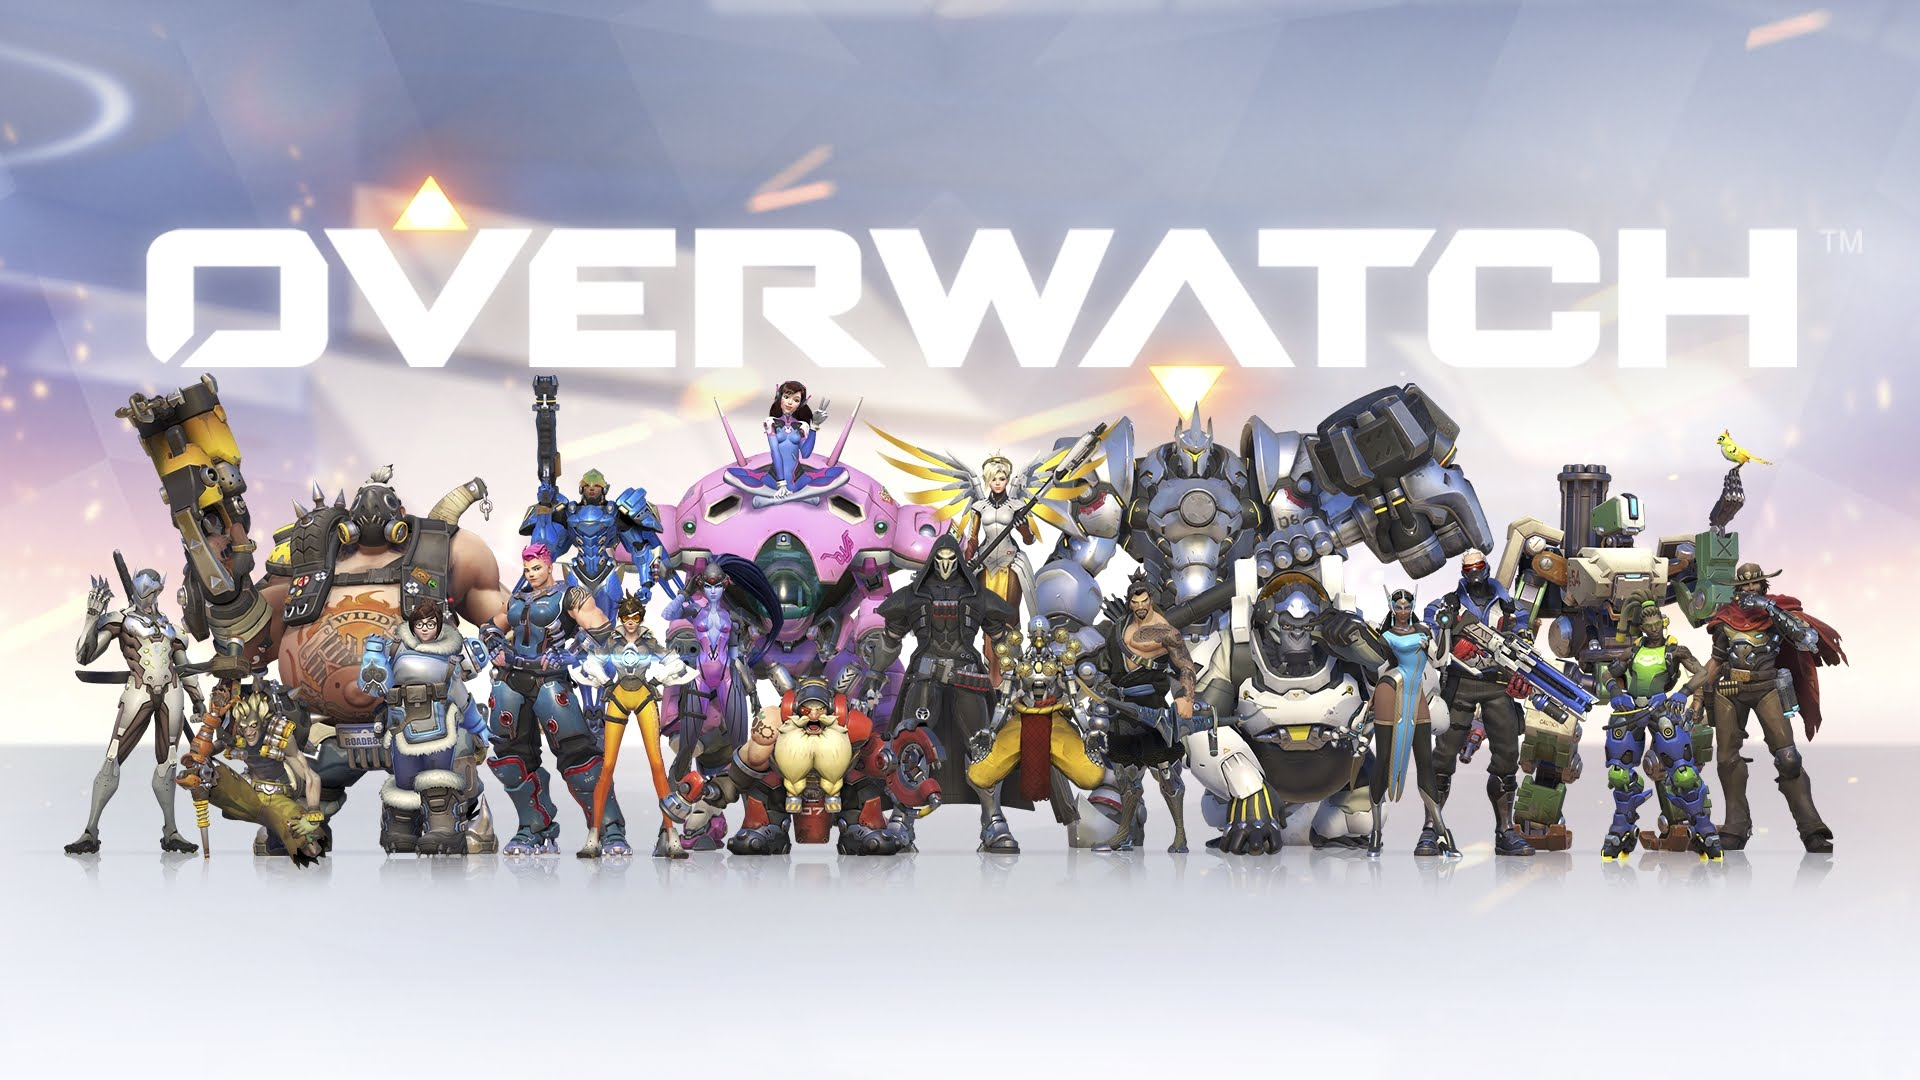 Overwatch Hd Wallpapers 7wallpapers Net